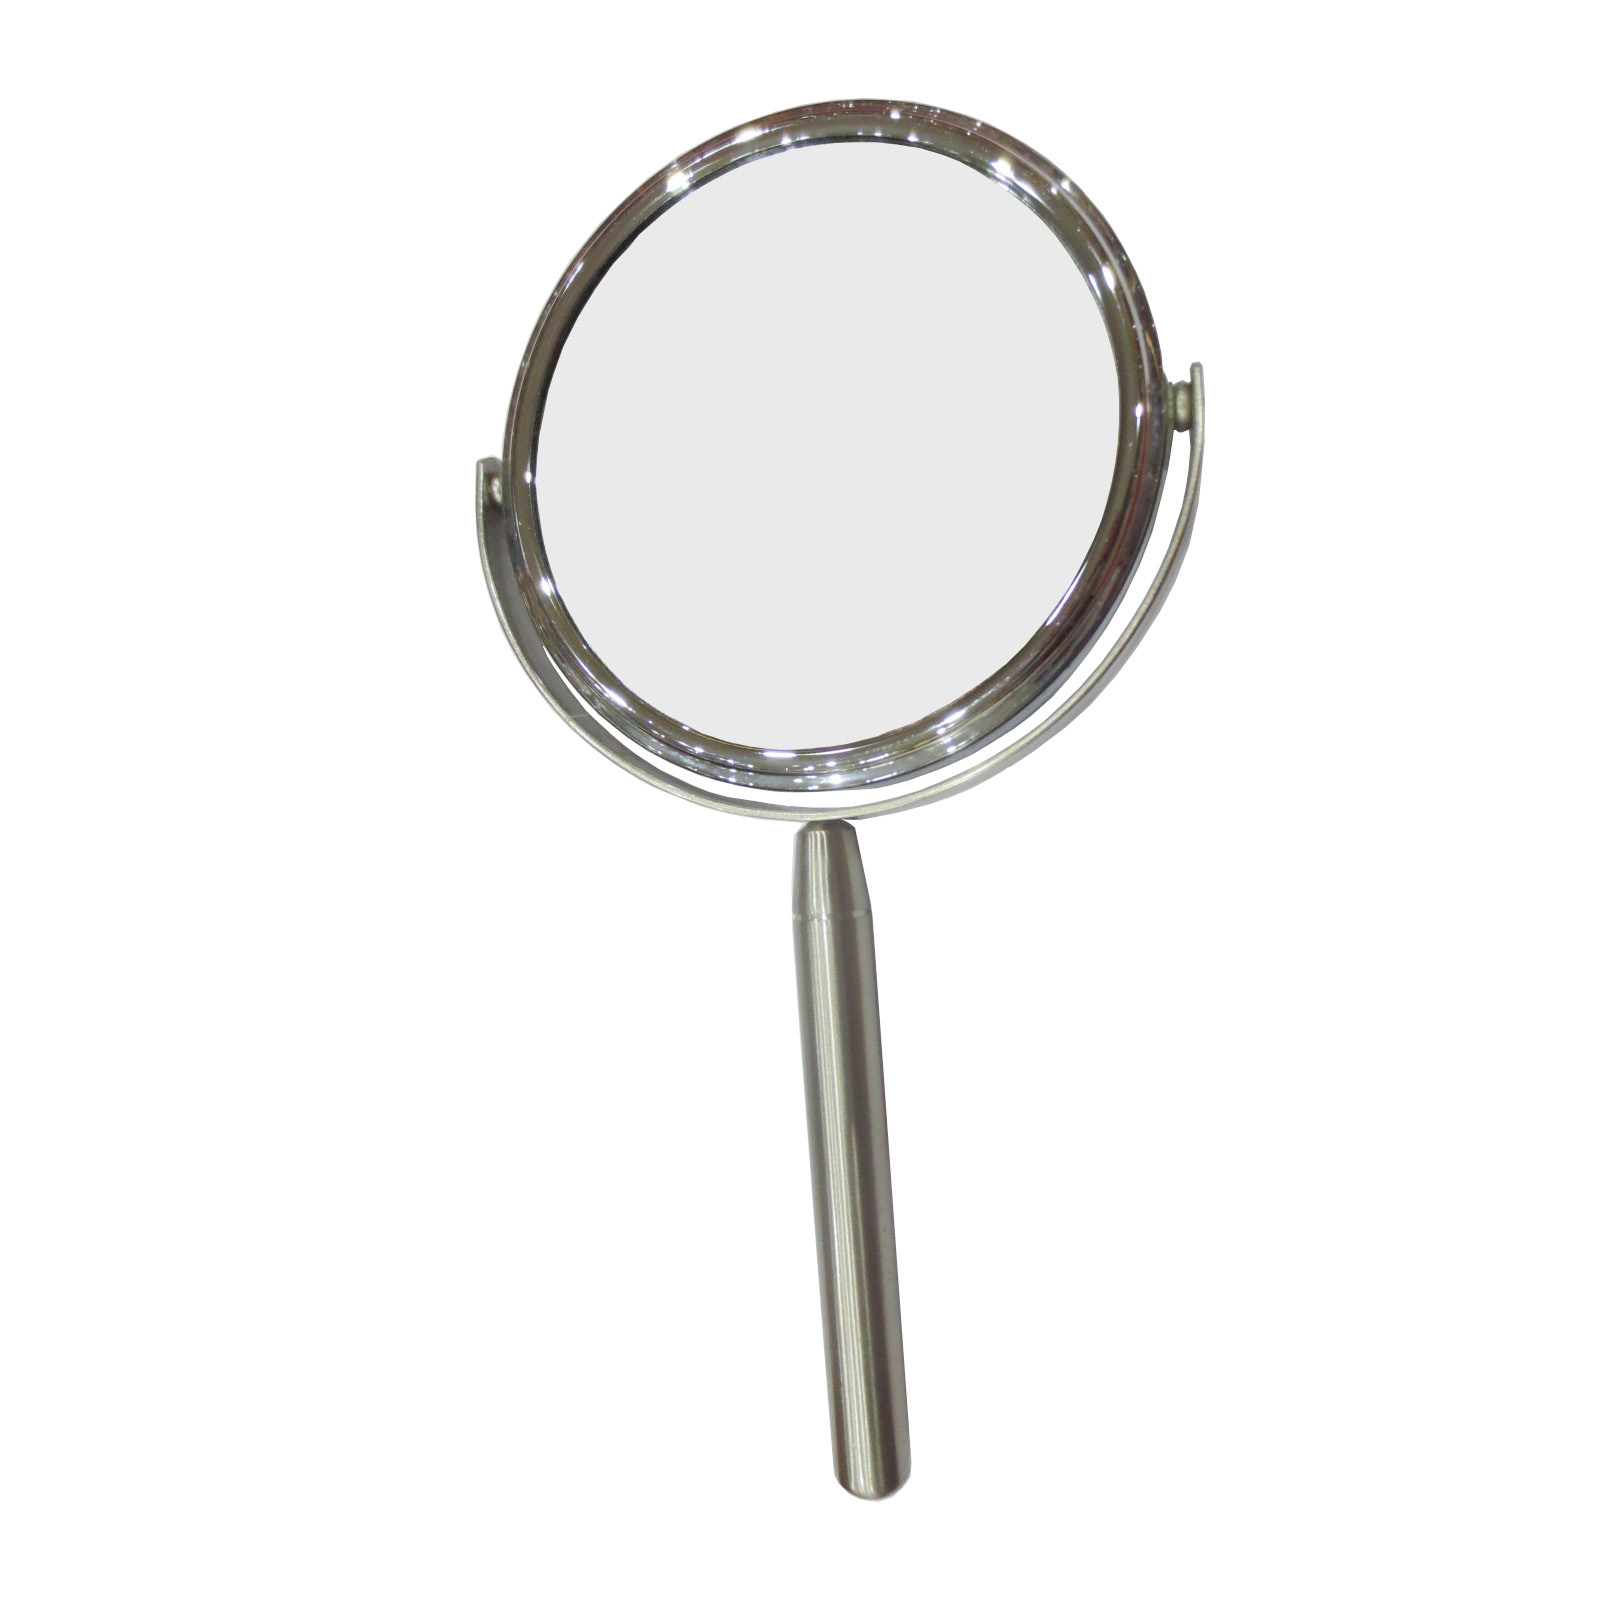 Hand Held Mirror Drawing Free Download On Clipartmag